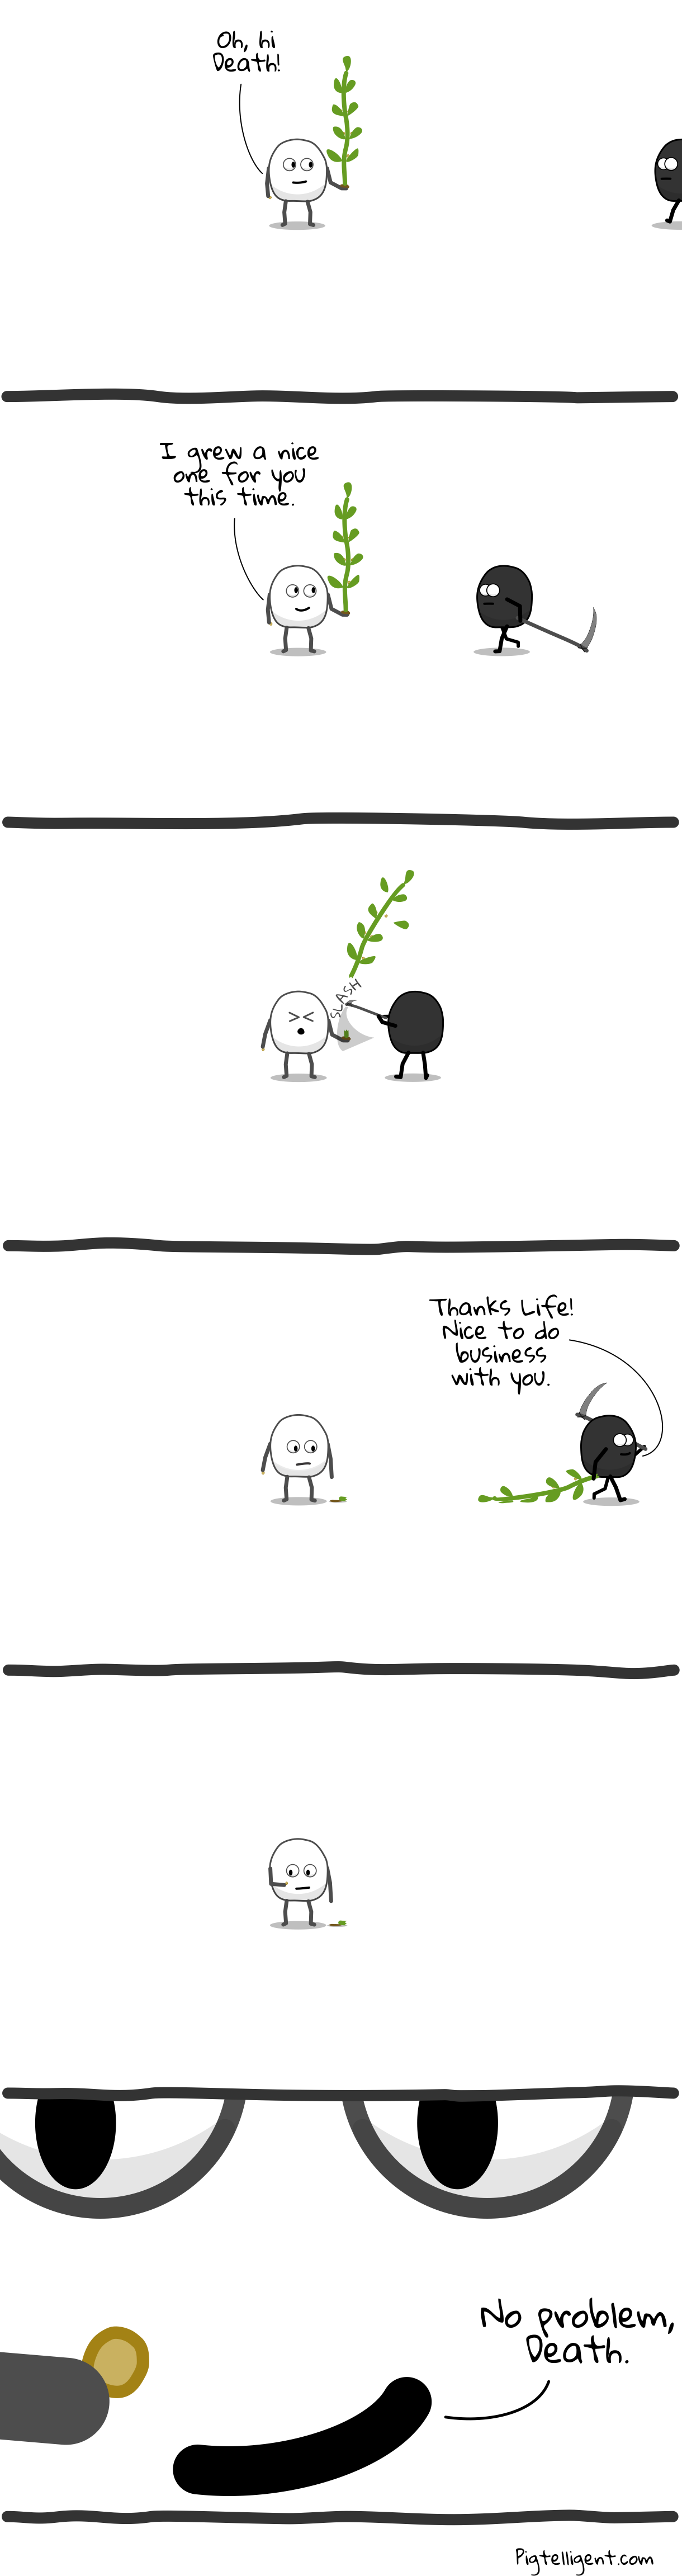 Life and Death part 3